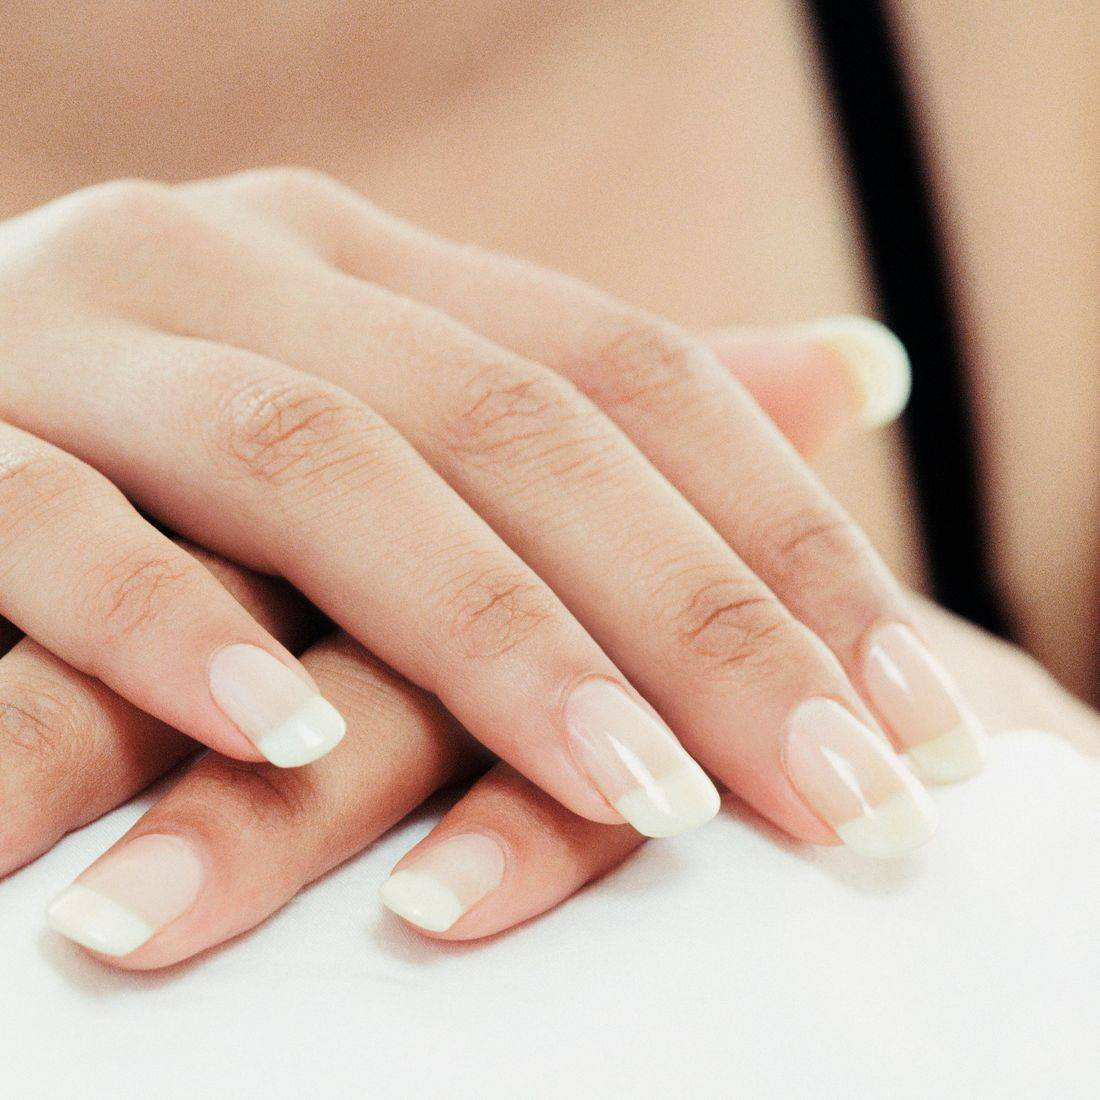 How to get rid of white patches in fingernails